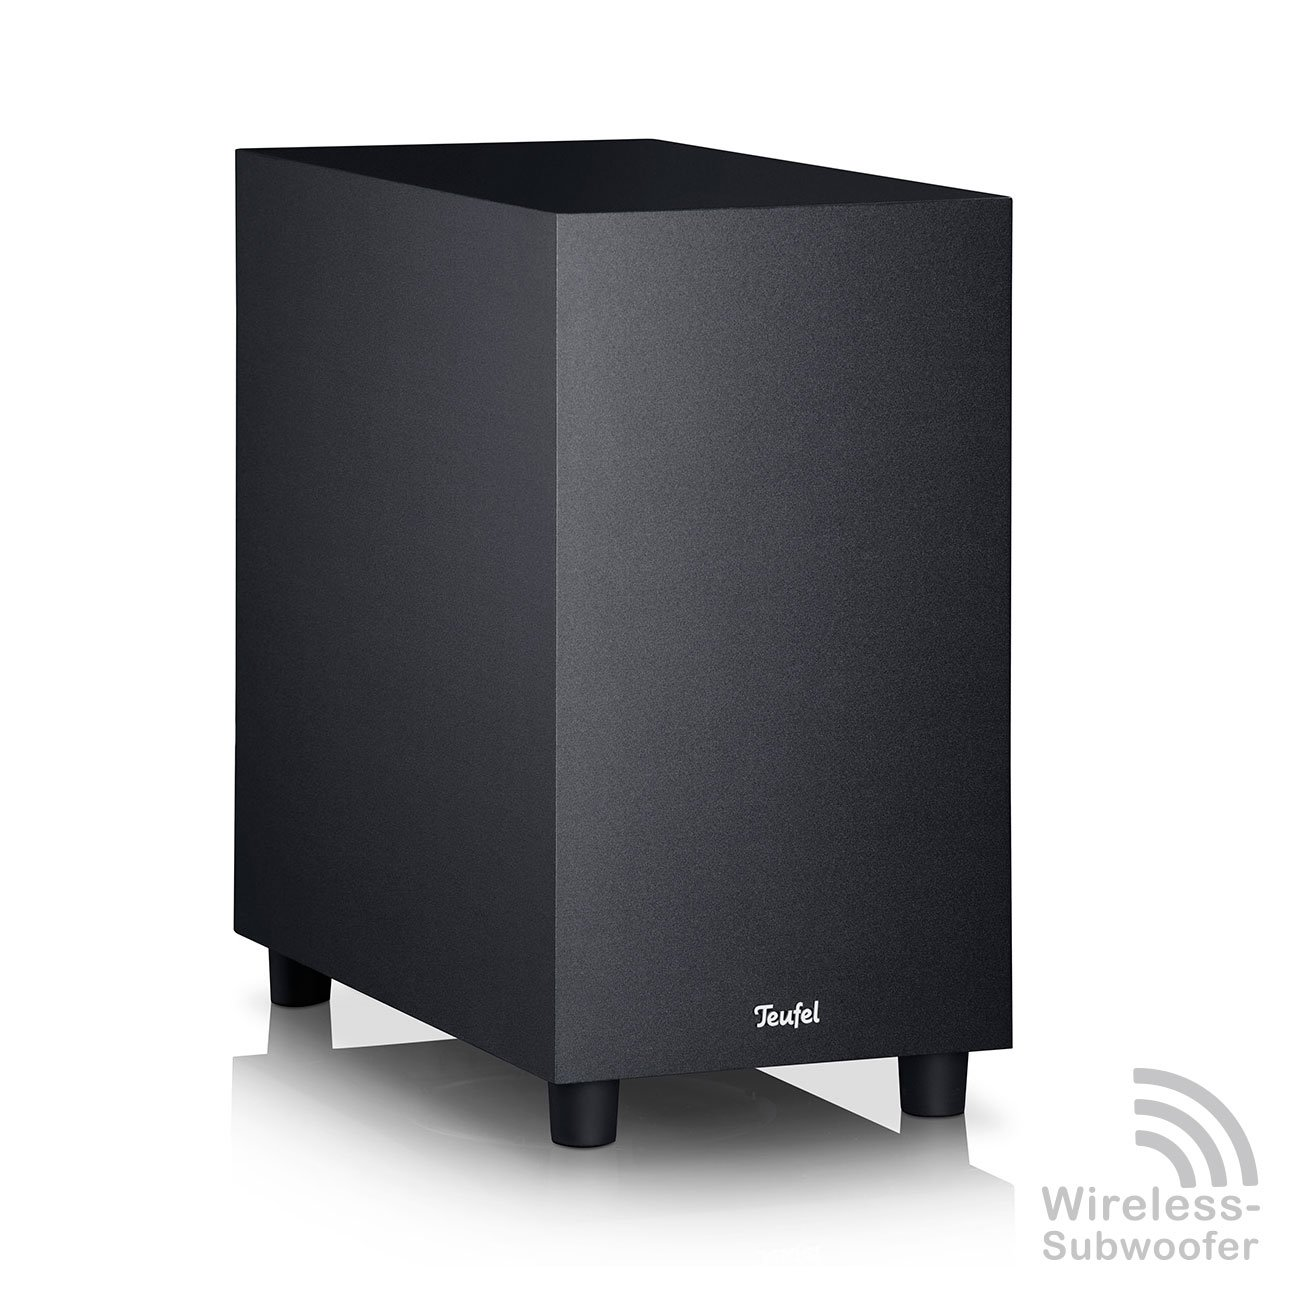 teufel 9281 cb 11 mk2 sw subwoofer heimkino lautsprecher sound box bass hifi ebay. Black Bedroom Furniture Sets. Home Design Ideas